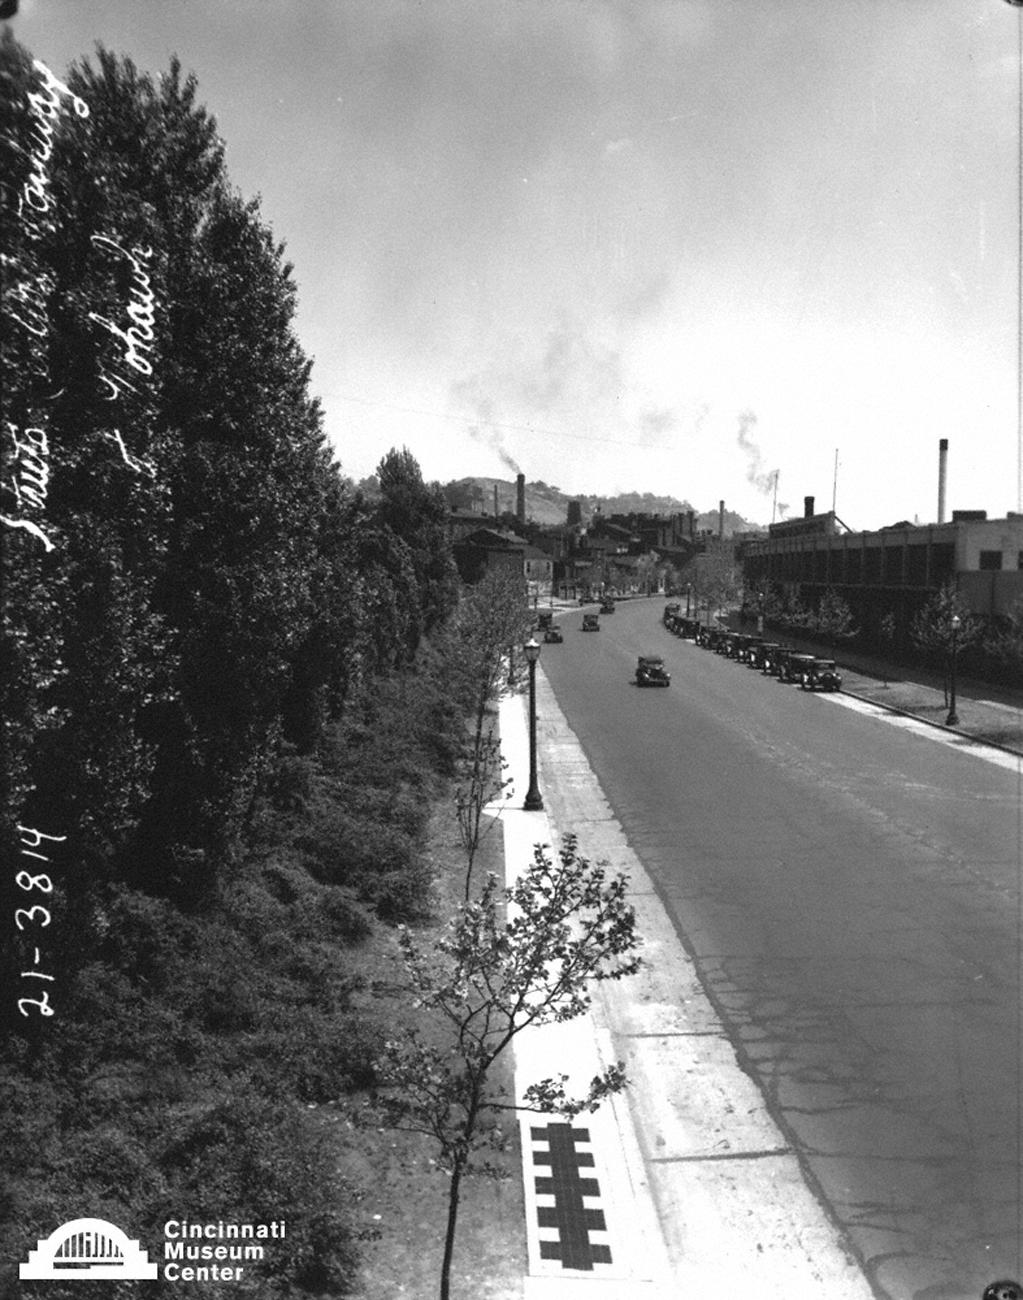 Looking east on Central Parkway from the early 20th Century / Image: Paul Briol, accessed via the Cincinnati Museum Center History Library and Archives // Published: 2.16.19Accessed via the Cincinnati Museum Center History Library and Archives.